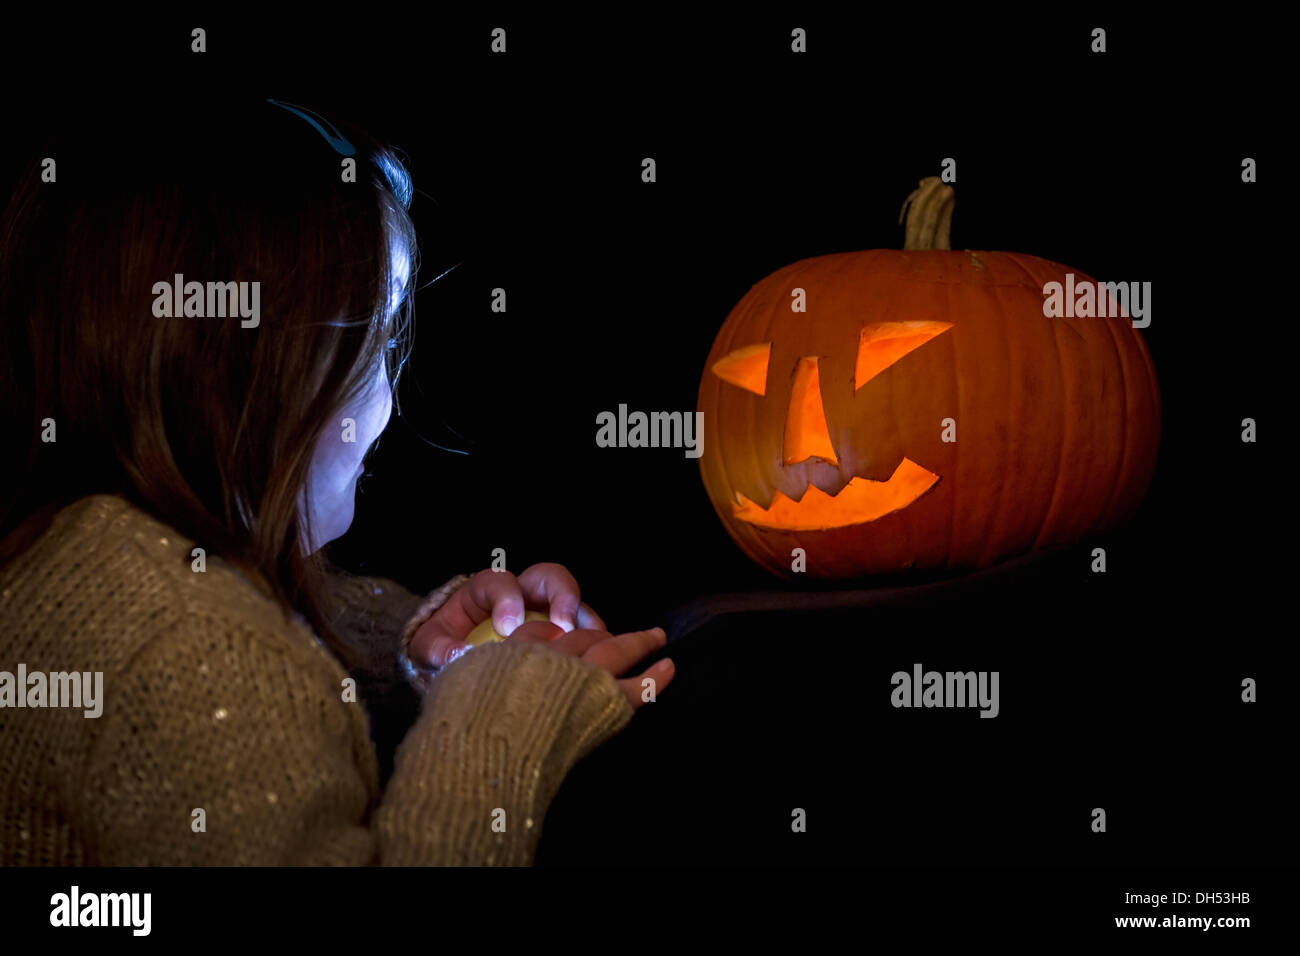 Northampton, UK. 31st October 2013. Grandad and Grandaughter after carving a pumpkin for Halloween Credit:  Keith J Smith./Alamy Live News - Stock Image